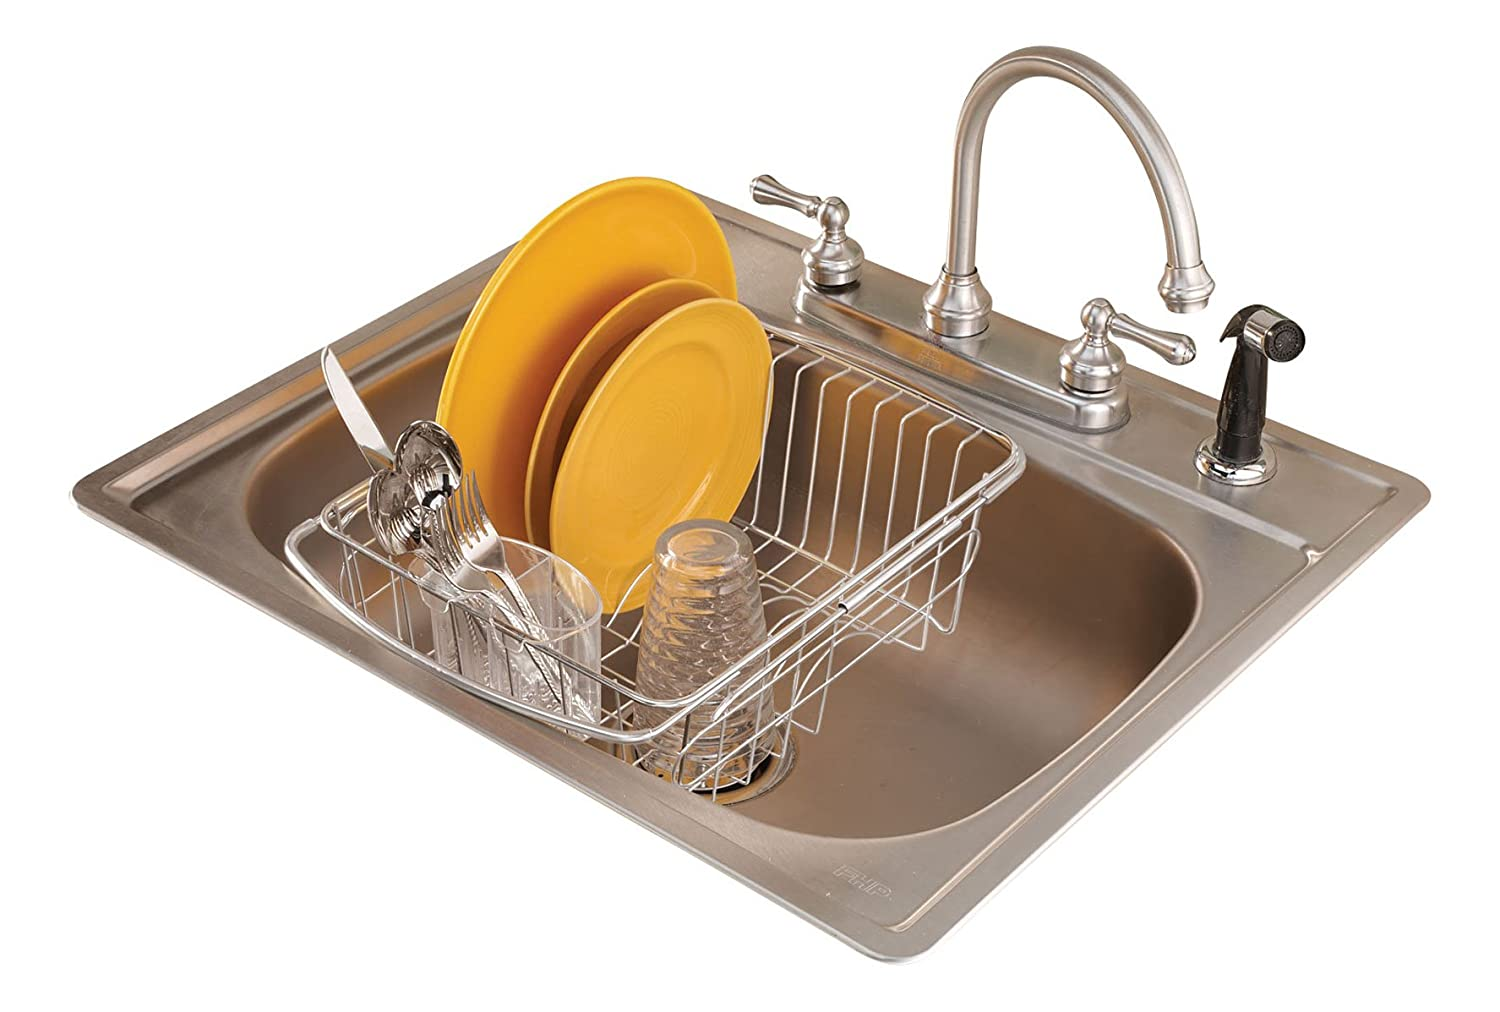 Stainless Steel Over The Sink Dish Drainer Rack Check Price